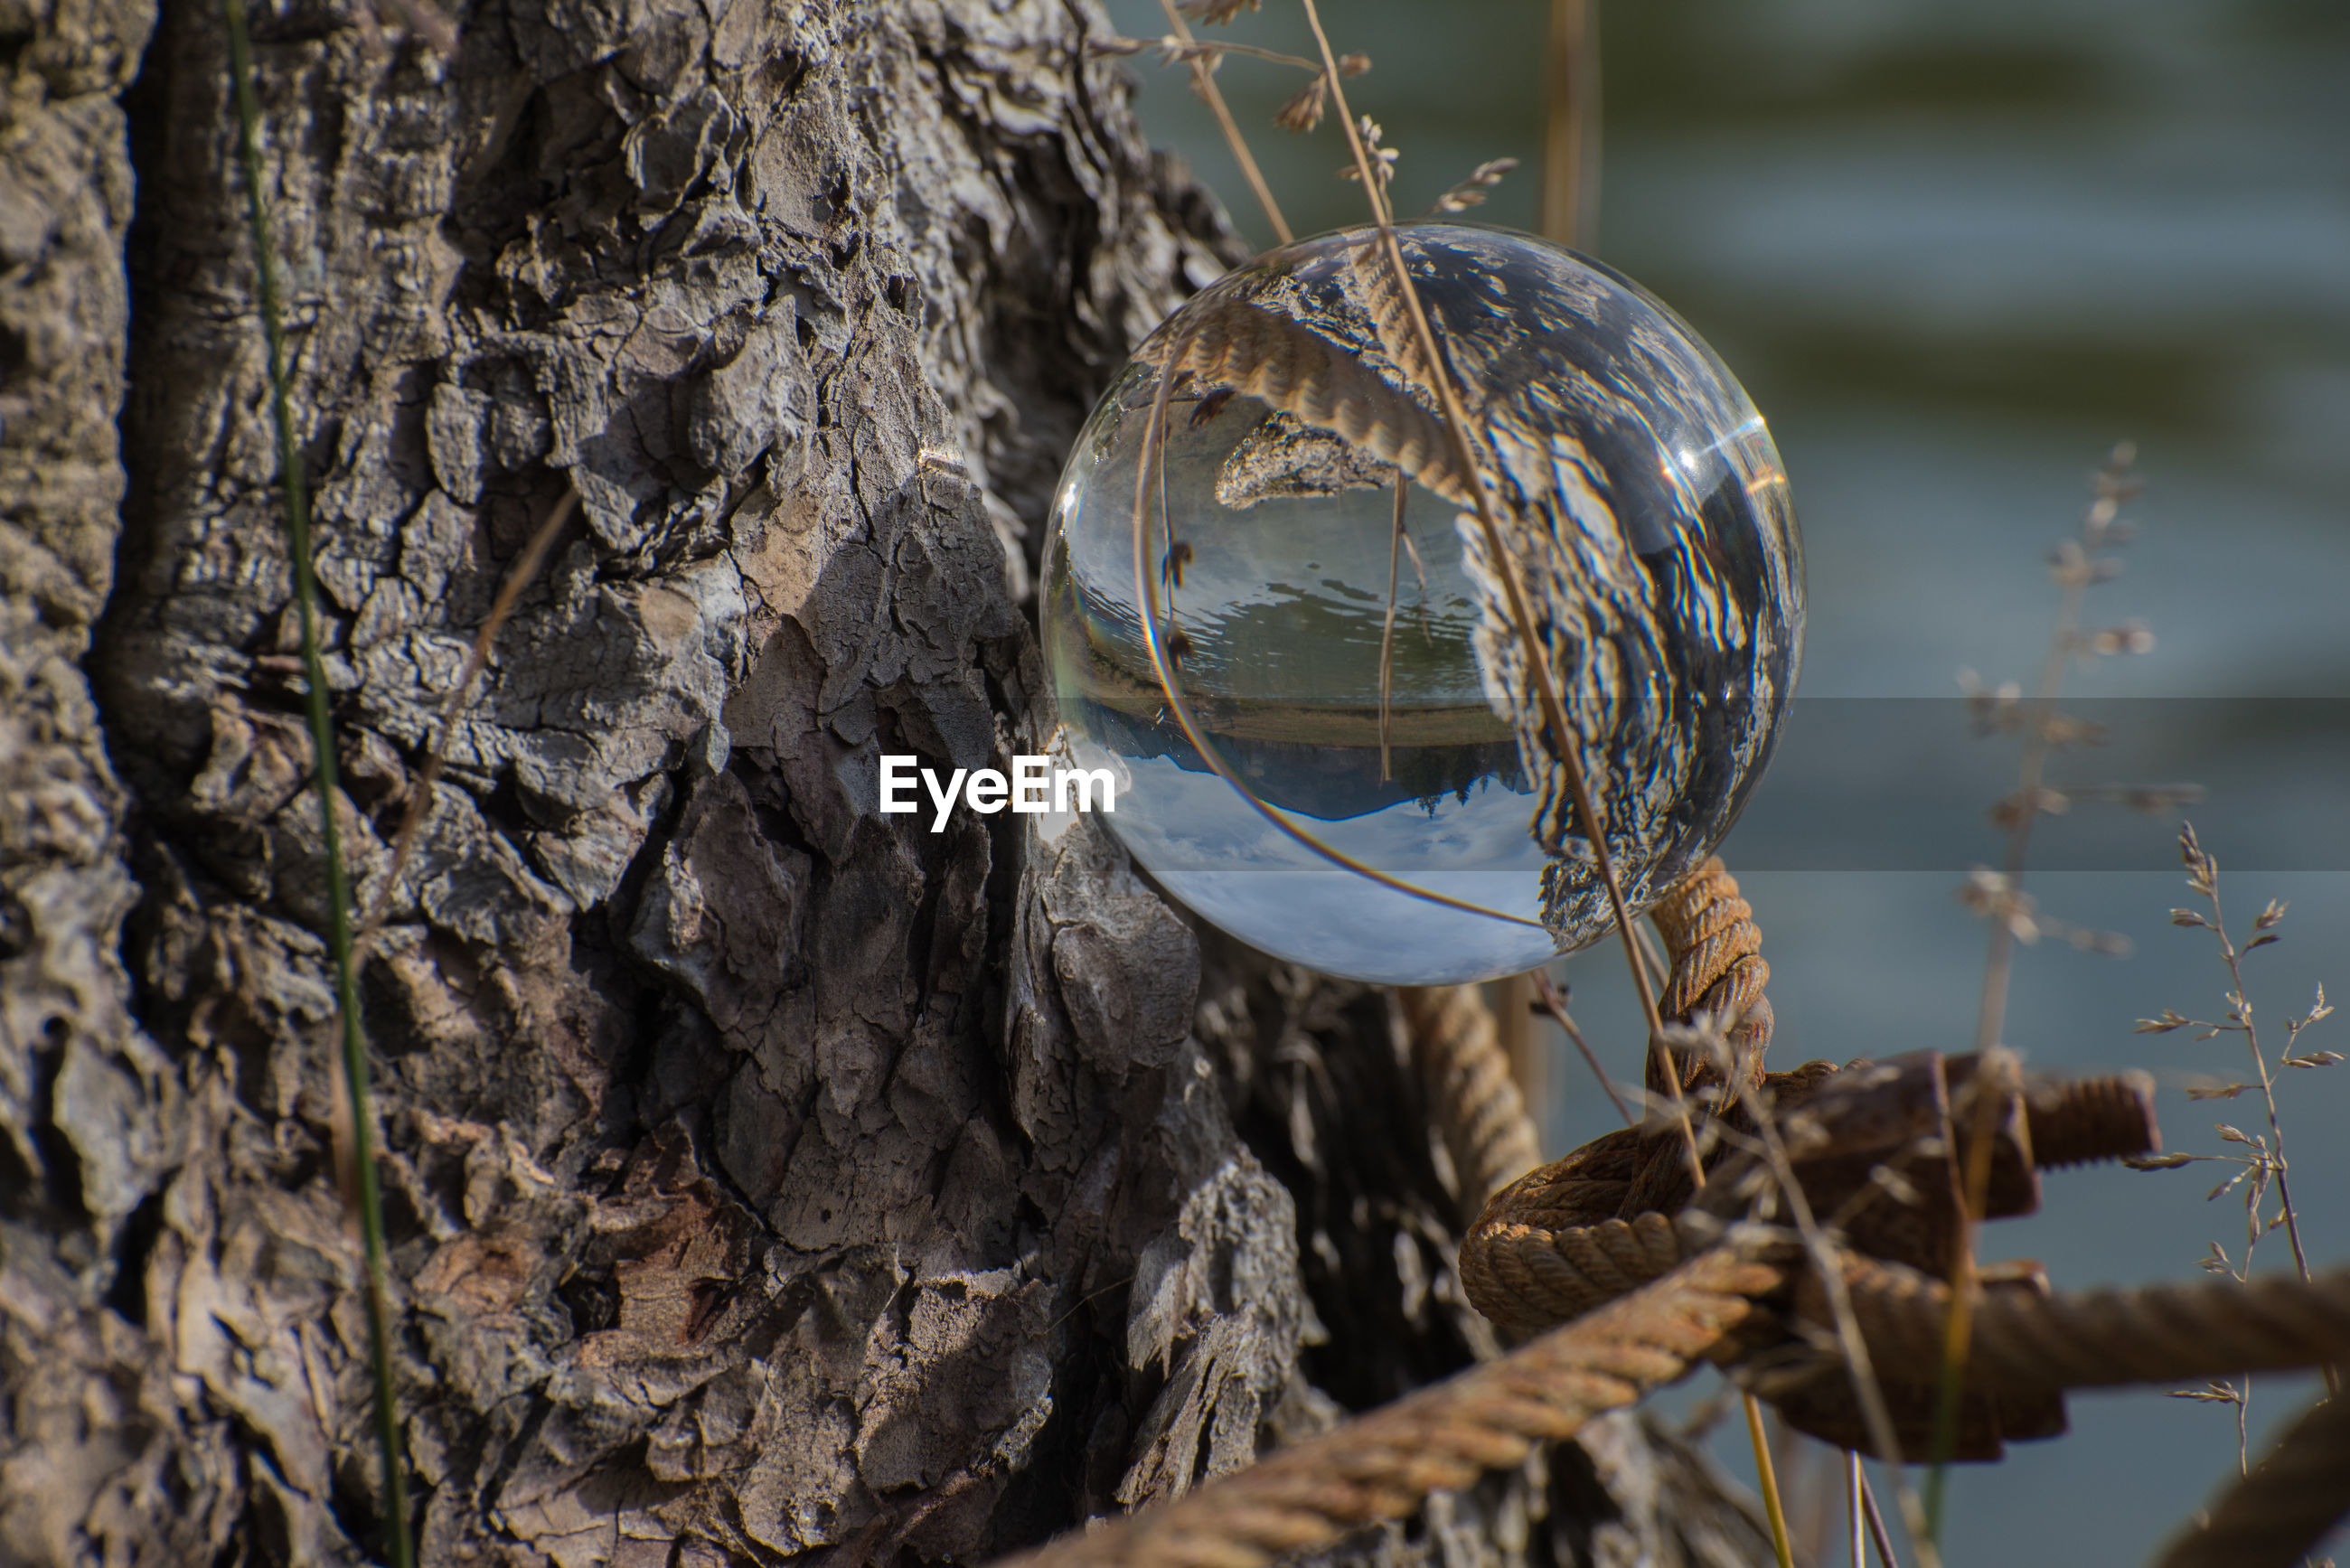 Reflection of landscape in crystal ball